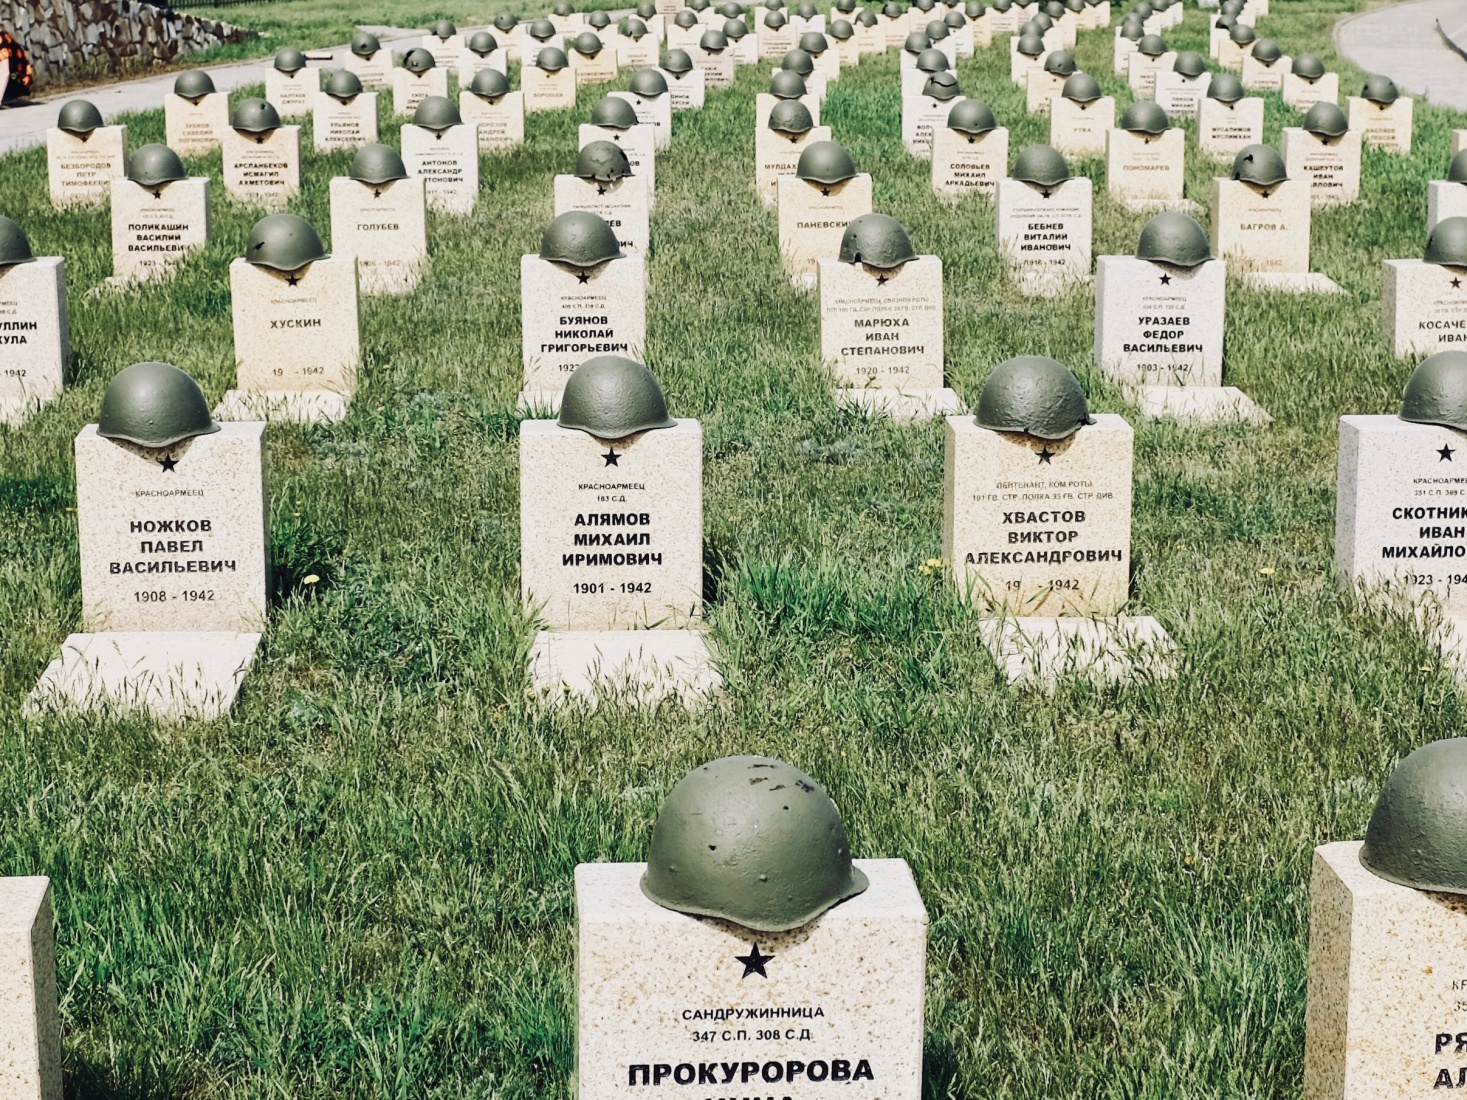 Graves in the reconciliation cemetery, Rossoshka Memorial Cemetery, with Russian, German, and Romanian soldiers buried together, outside Volgograd, Russia.